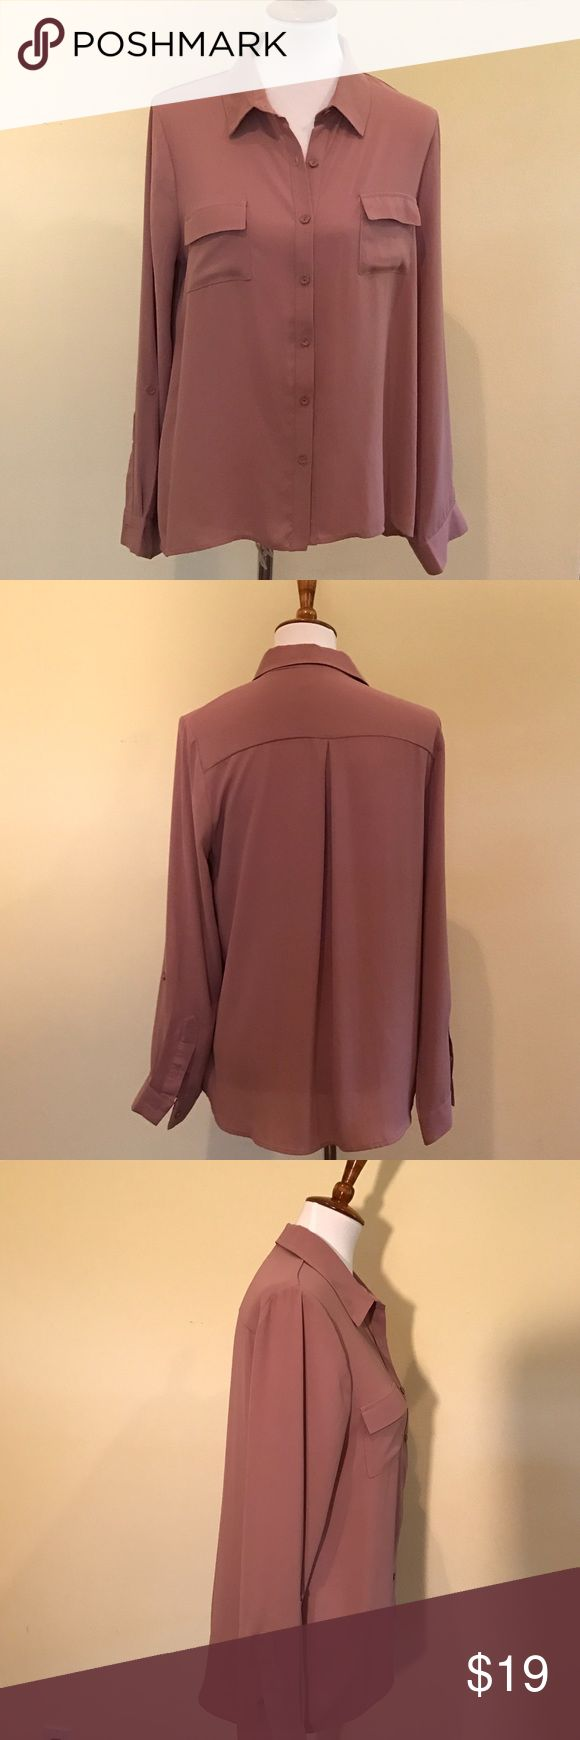 """Dusty Rose Button Down Blouse w/roll up Sleeves """"Silk like"""" Dusty Rose Blouse. Two pockets, Roll up Sleeve Option. Like New. Runs True to size. Tops Blouses"""